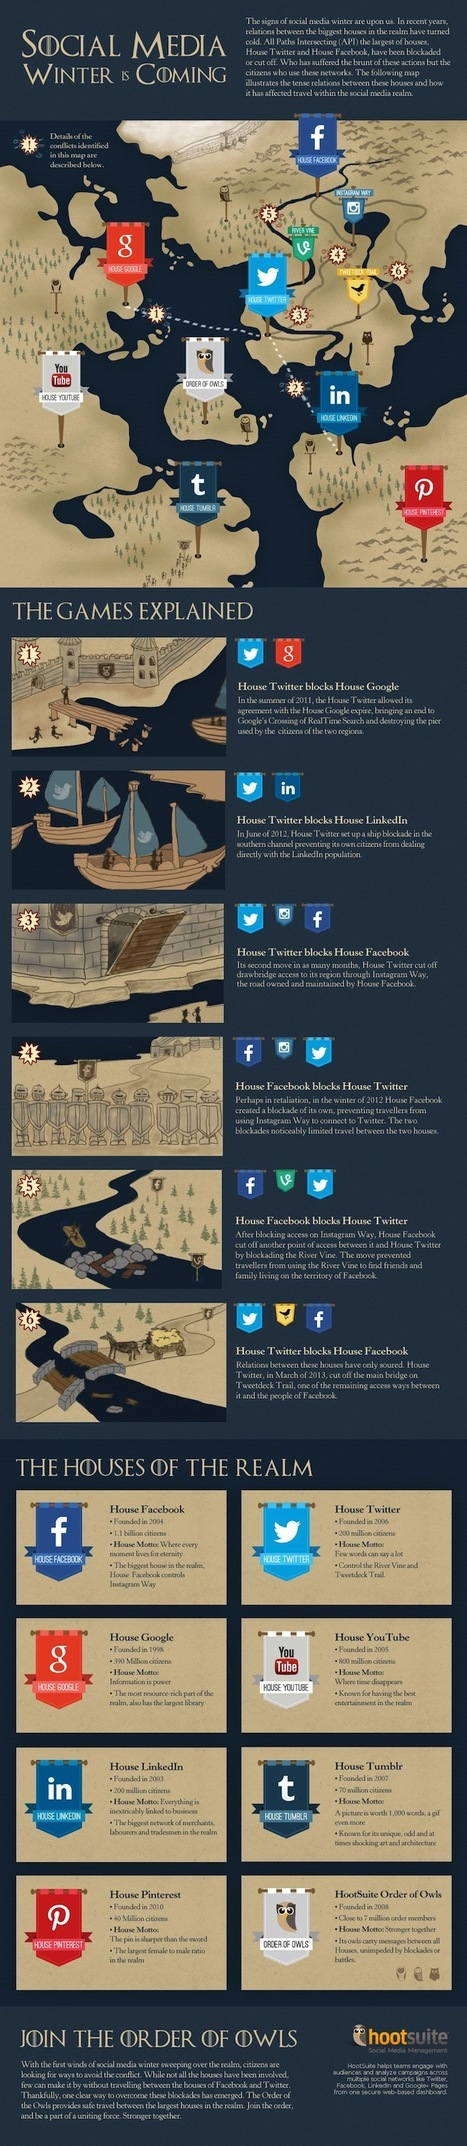 GoT-social-infographic-final.jpg (650x2987 pixels) | Campus France médias sociaux | Scoop.it